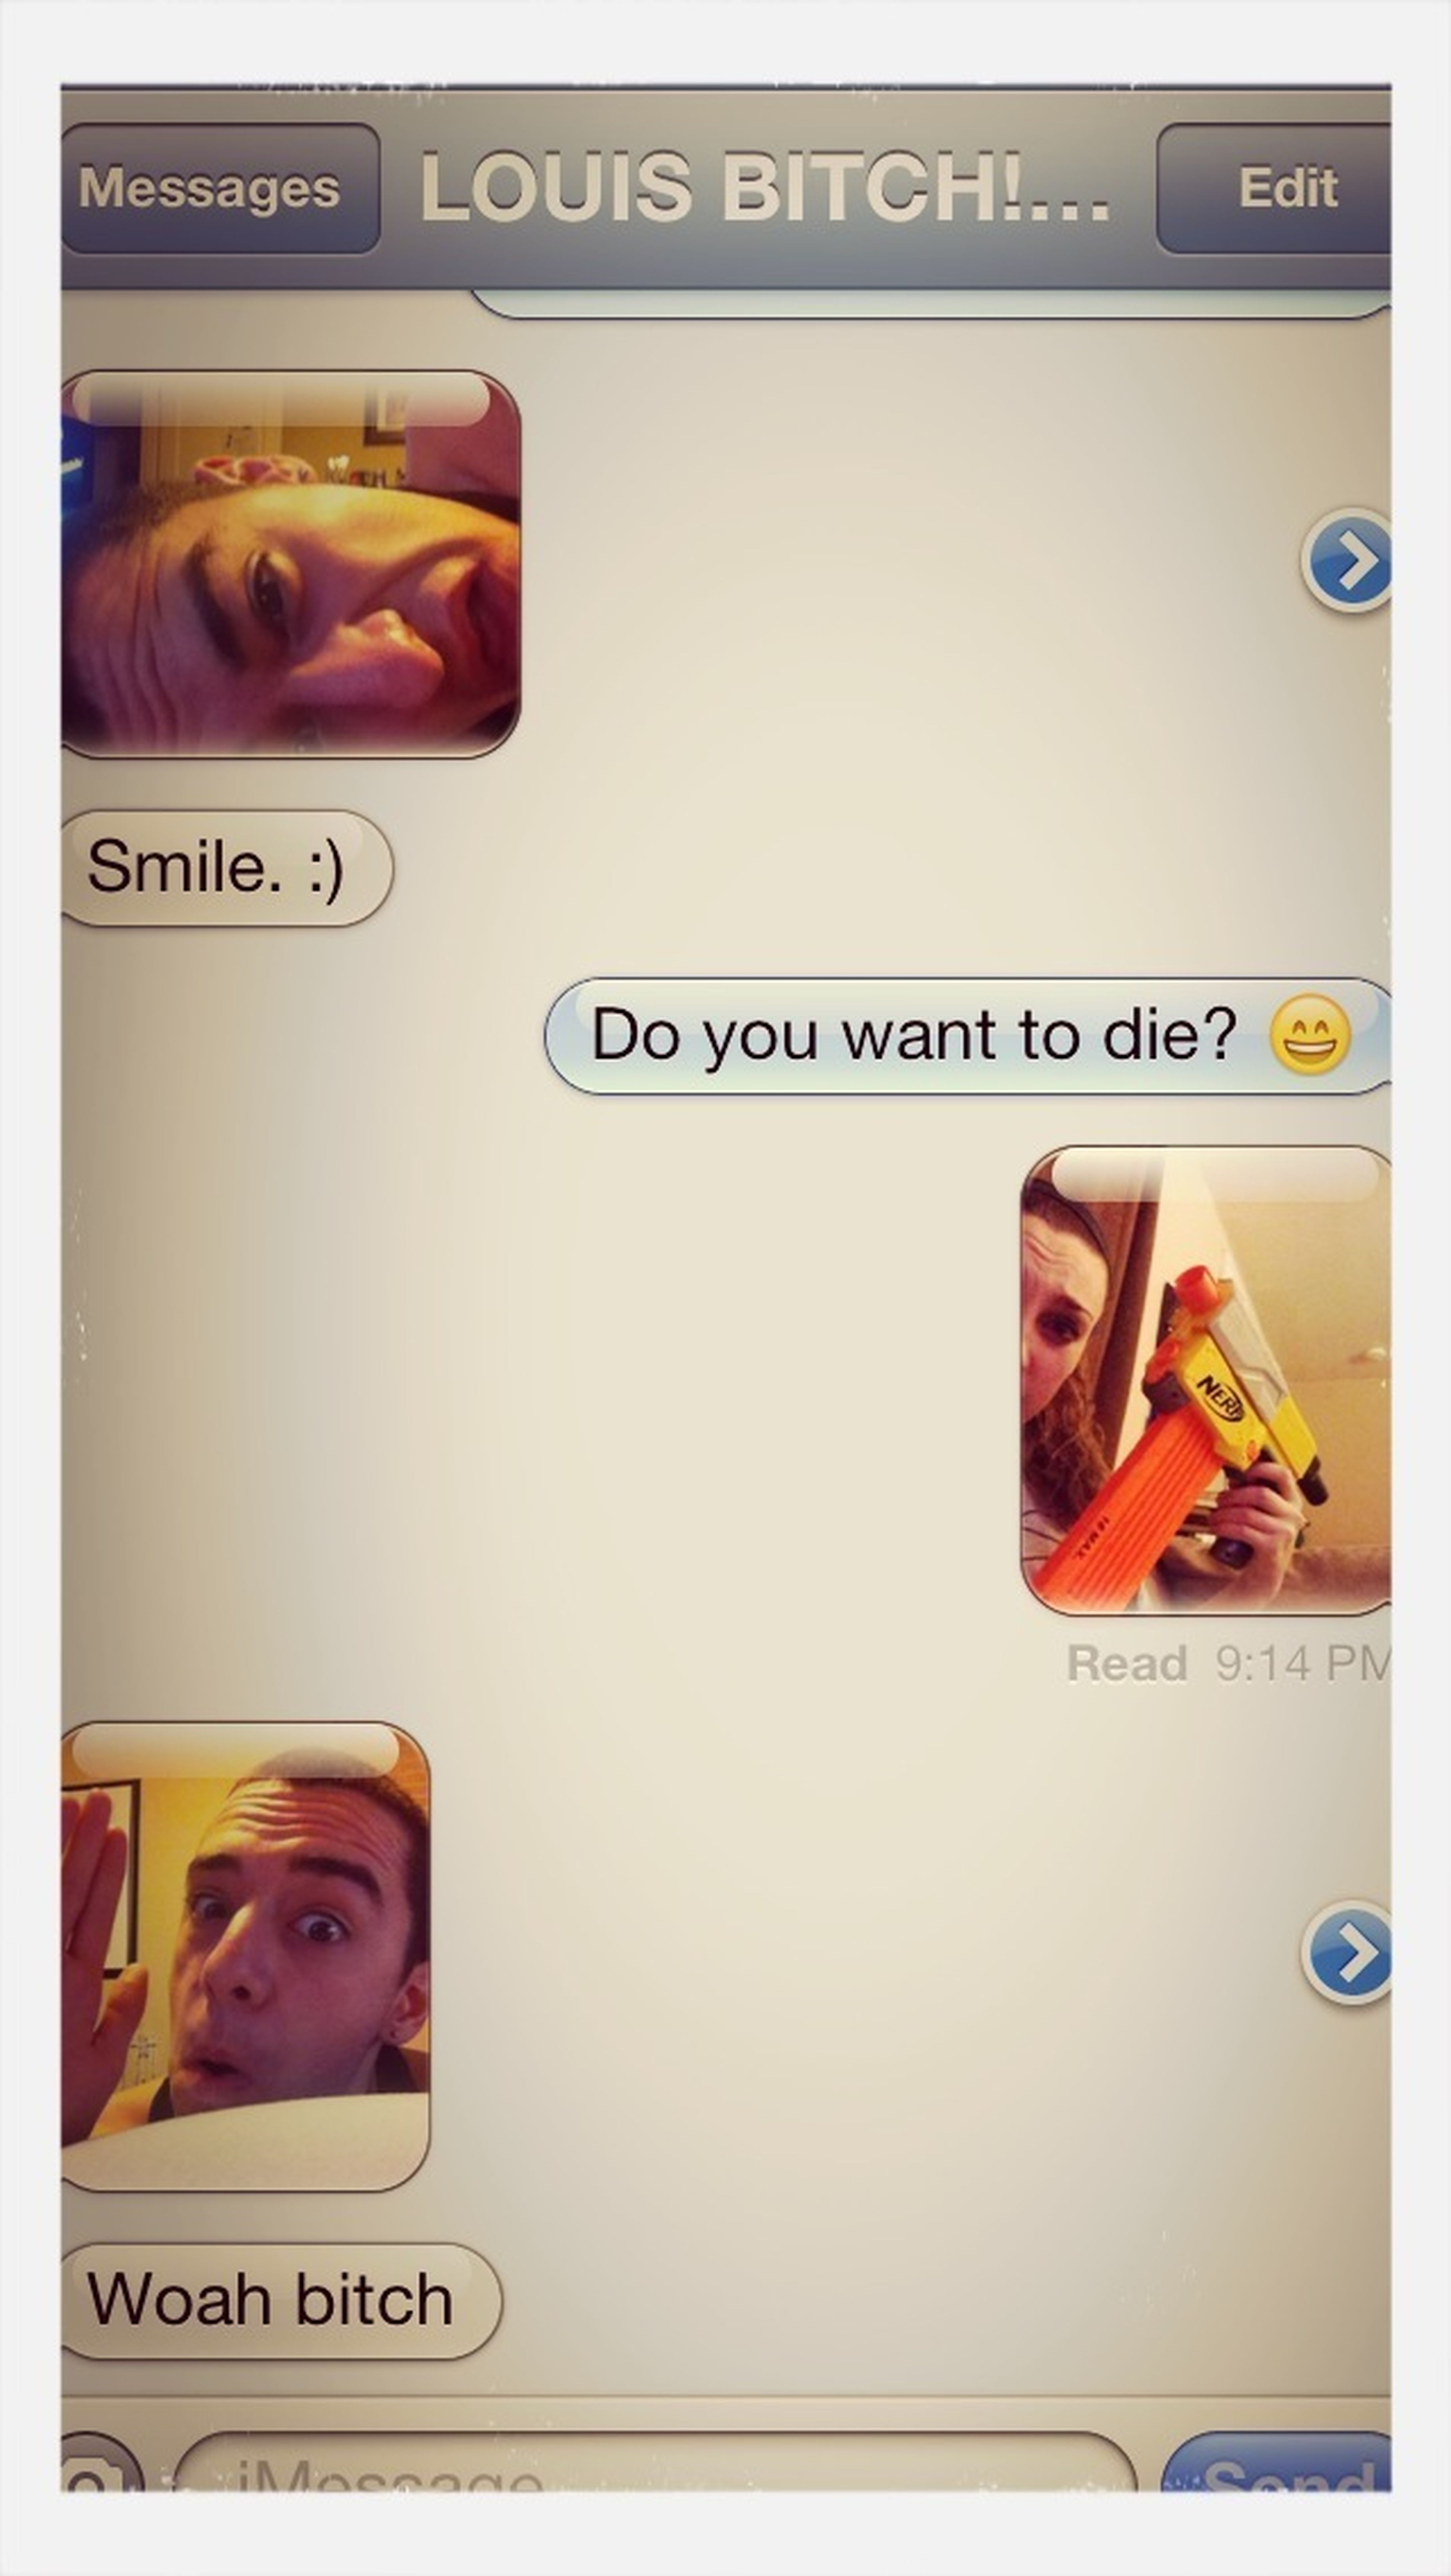 Our Conversations>>>